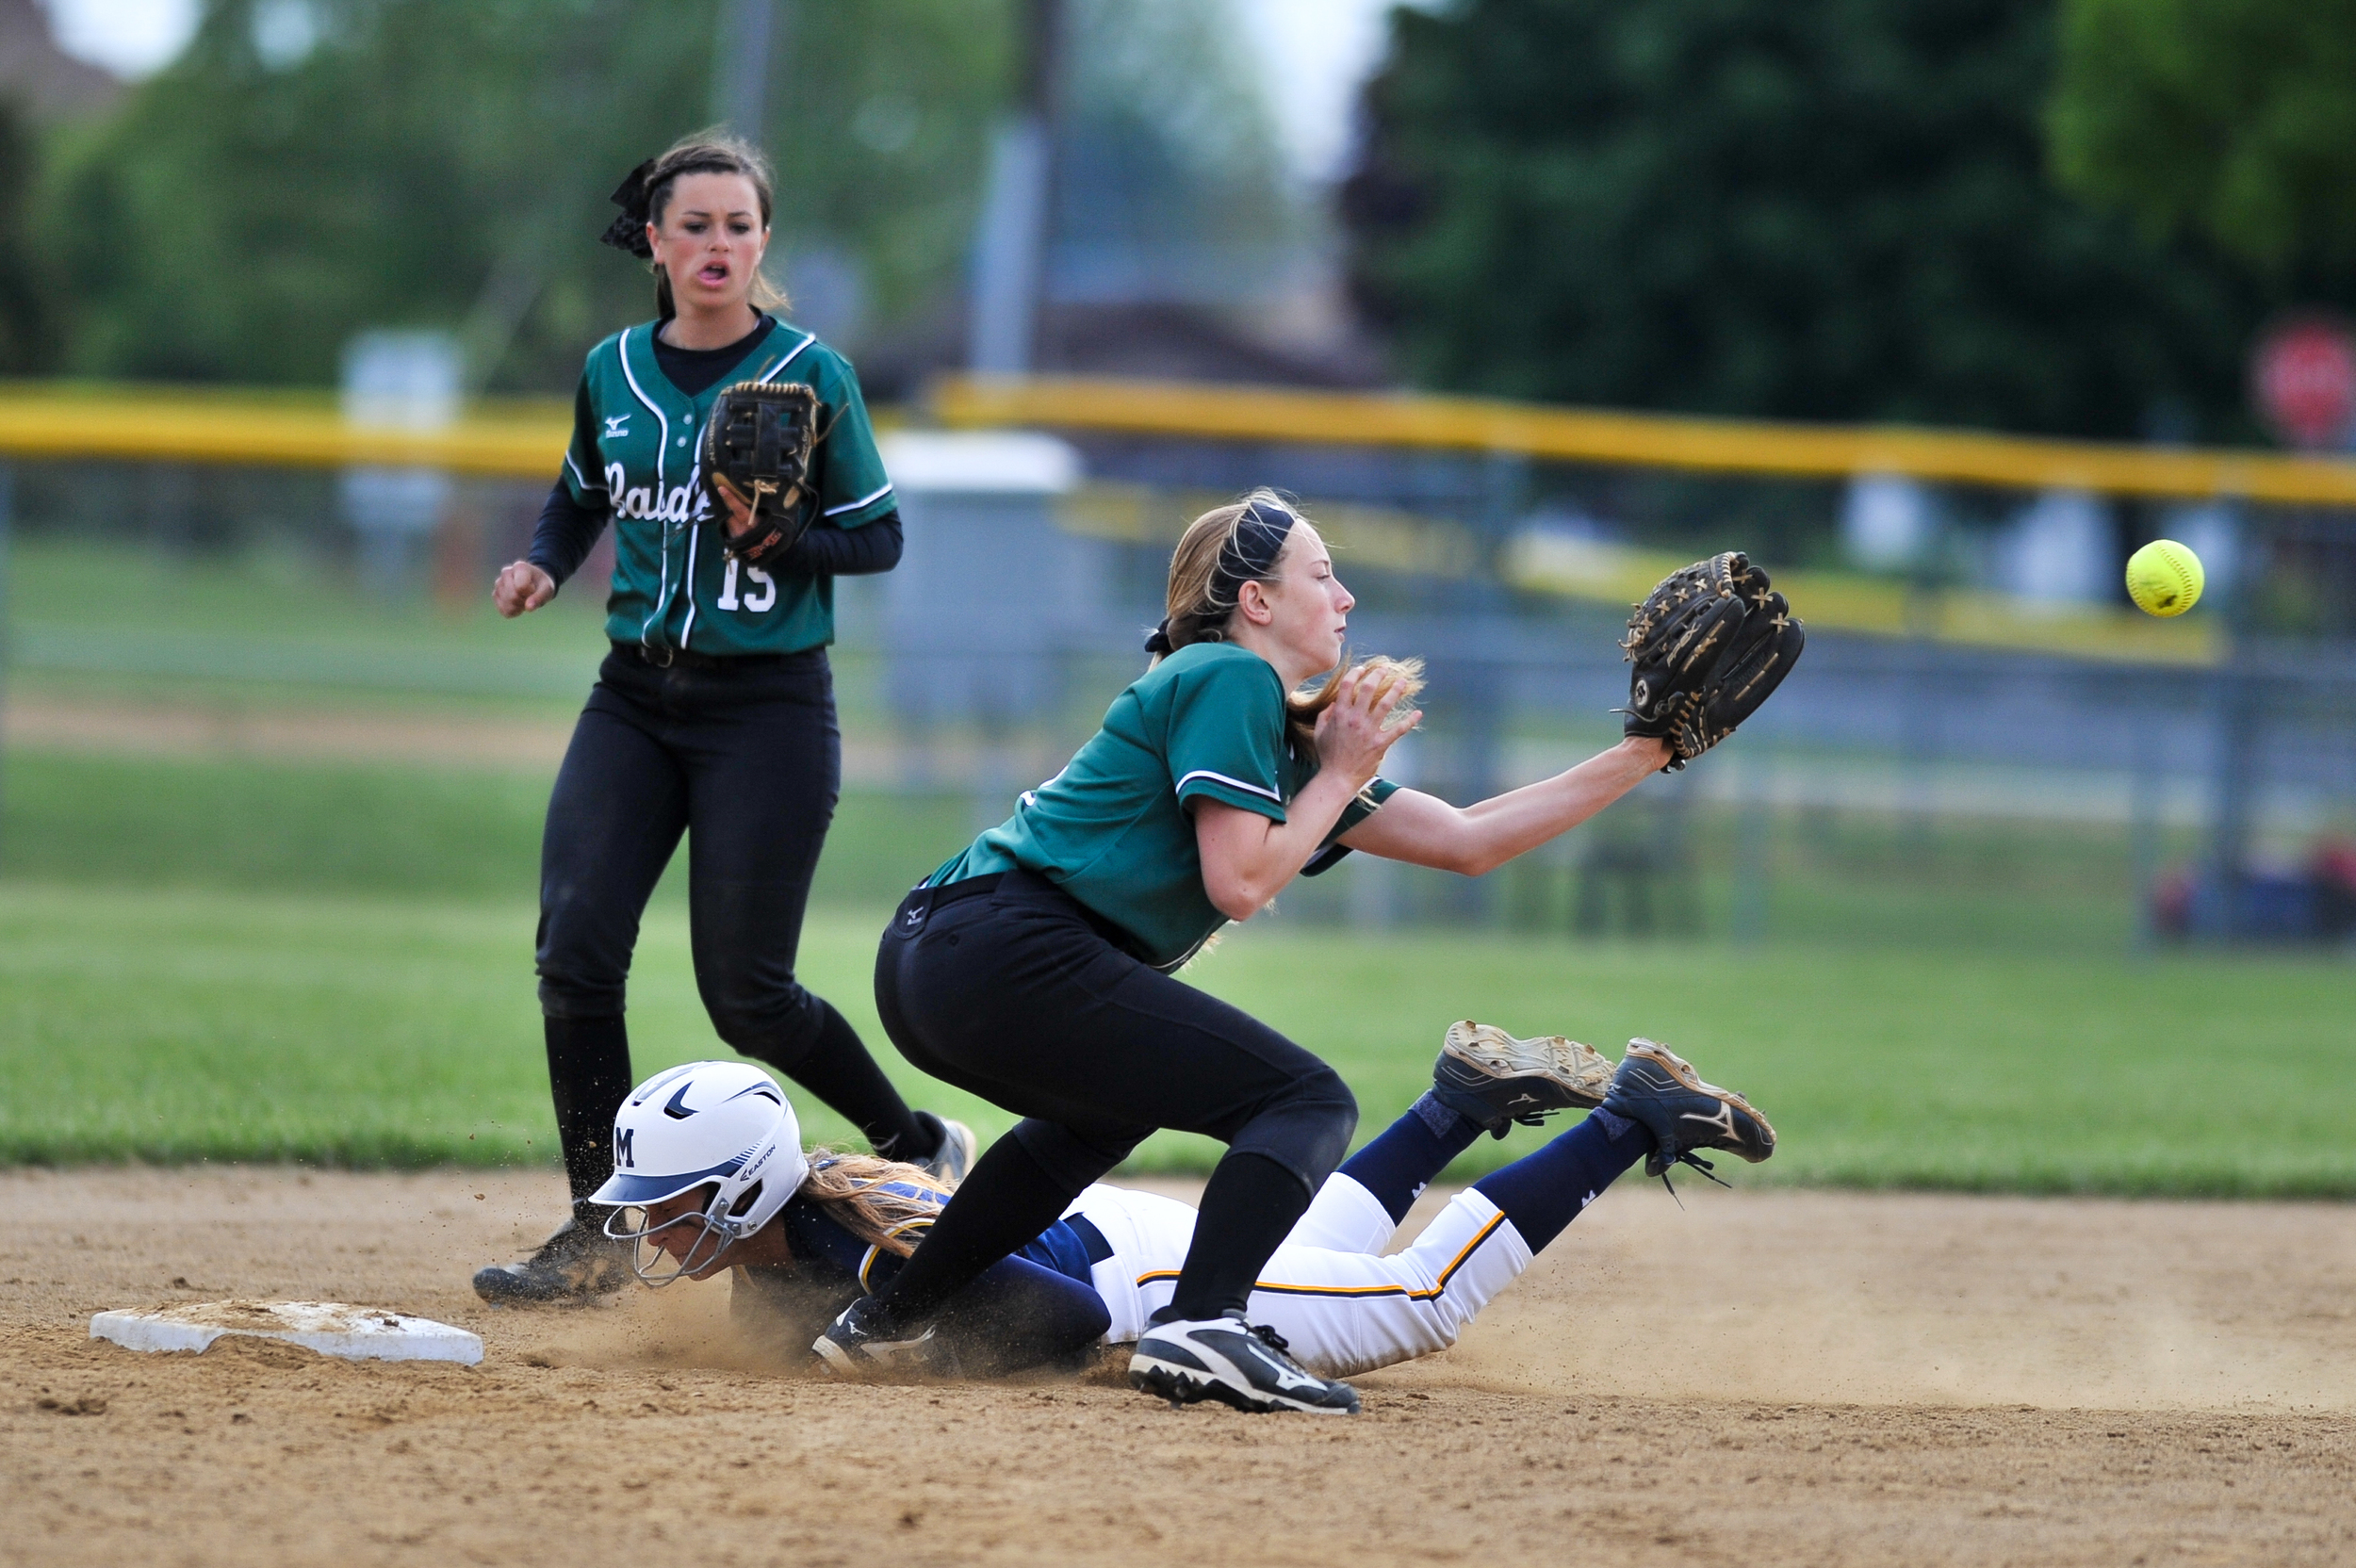 A softball play from Twin Valley High School attempts to catch the softball as her opponent from Muhlenberg High School slides into second base. The game was a semi-final on May 17, 2016,for the Berks County Championship tournament at Lyons Ballfield.